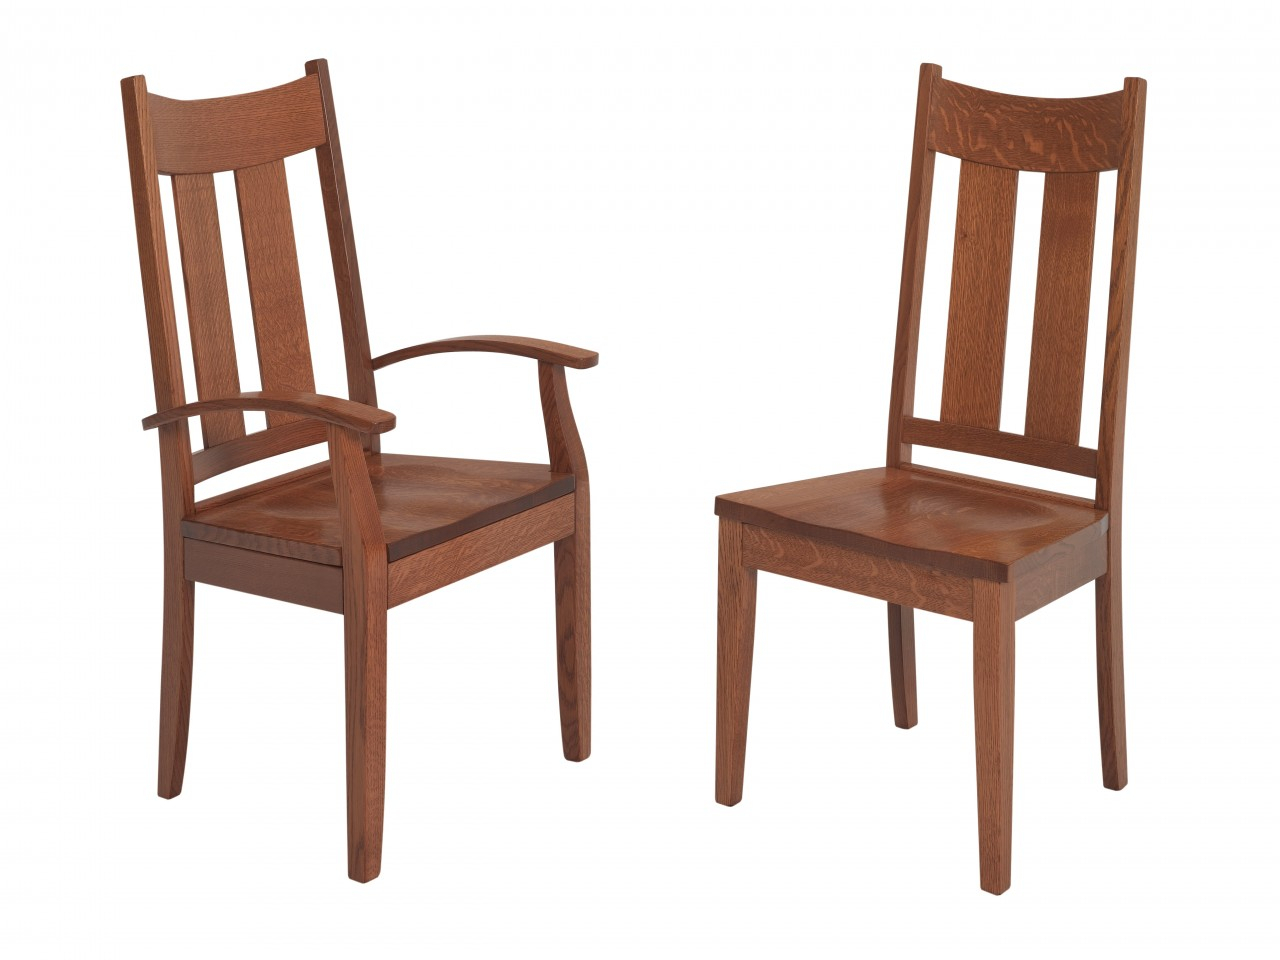 Aspen Chair (Fn Aspen) – Westchester Woods Regarding Aspen Swivel Chairs (Image 1 of 20)